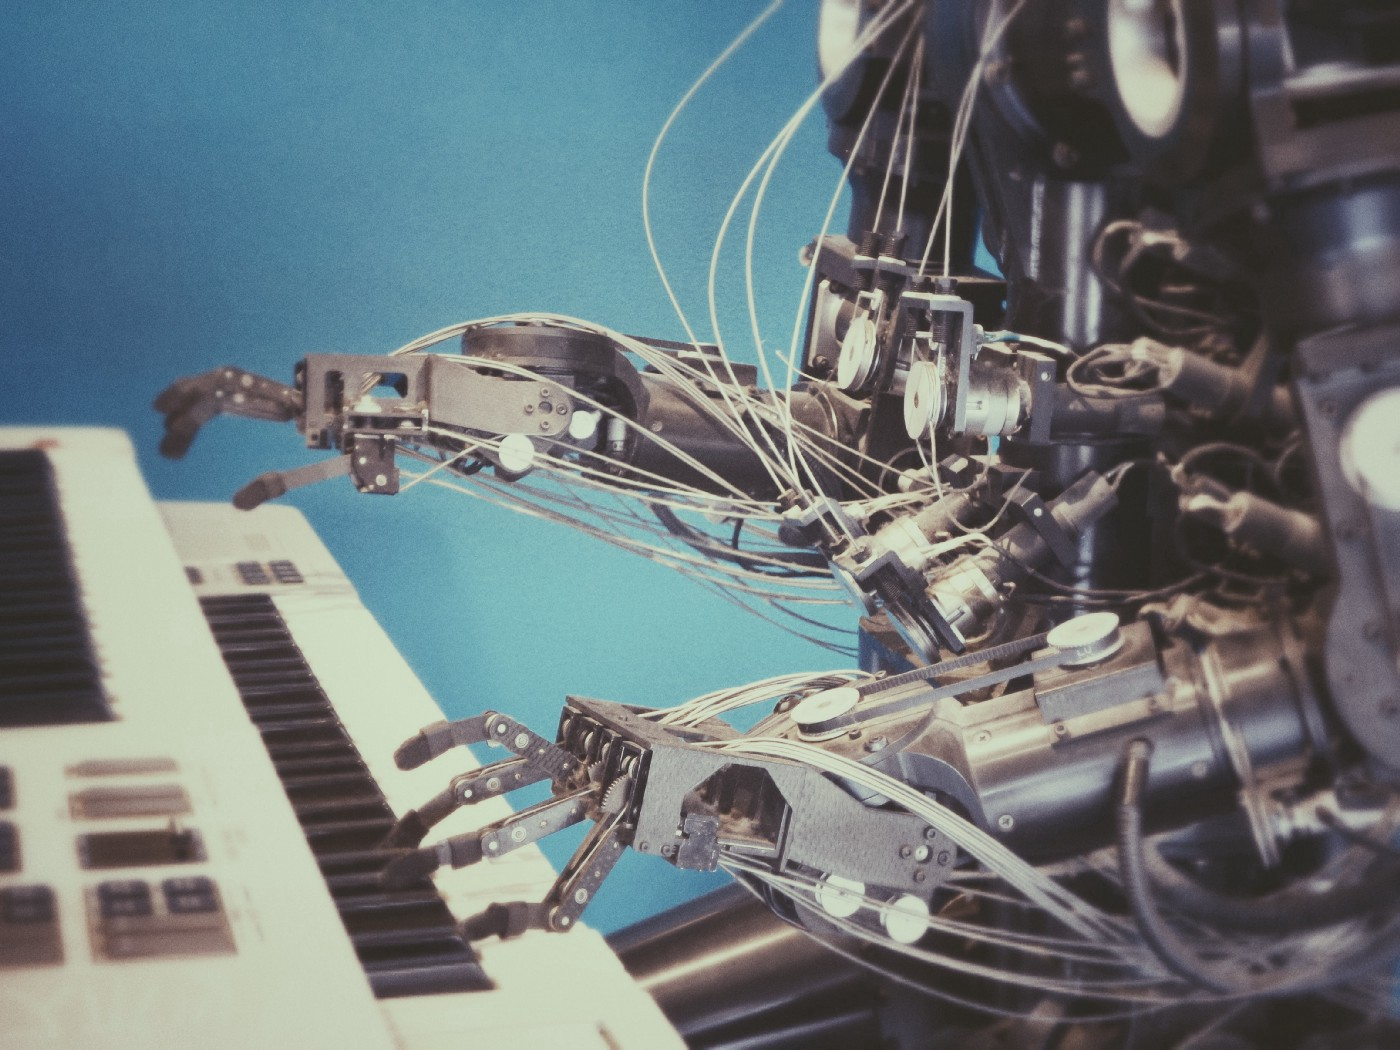 A robot playing a keyboard